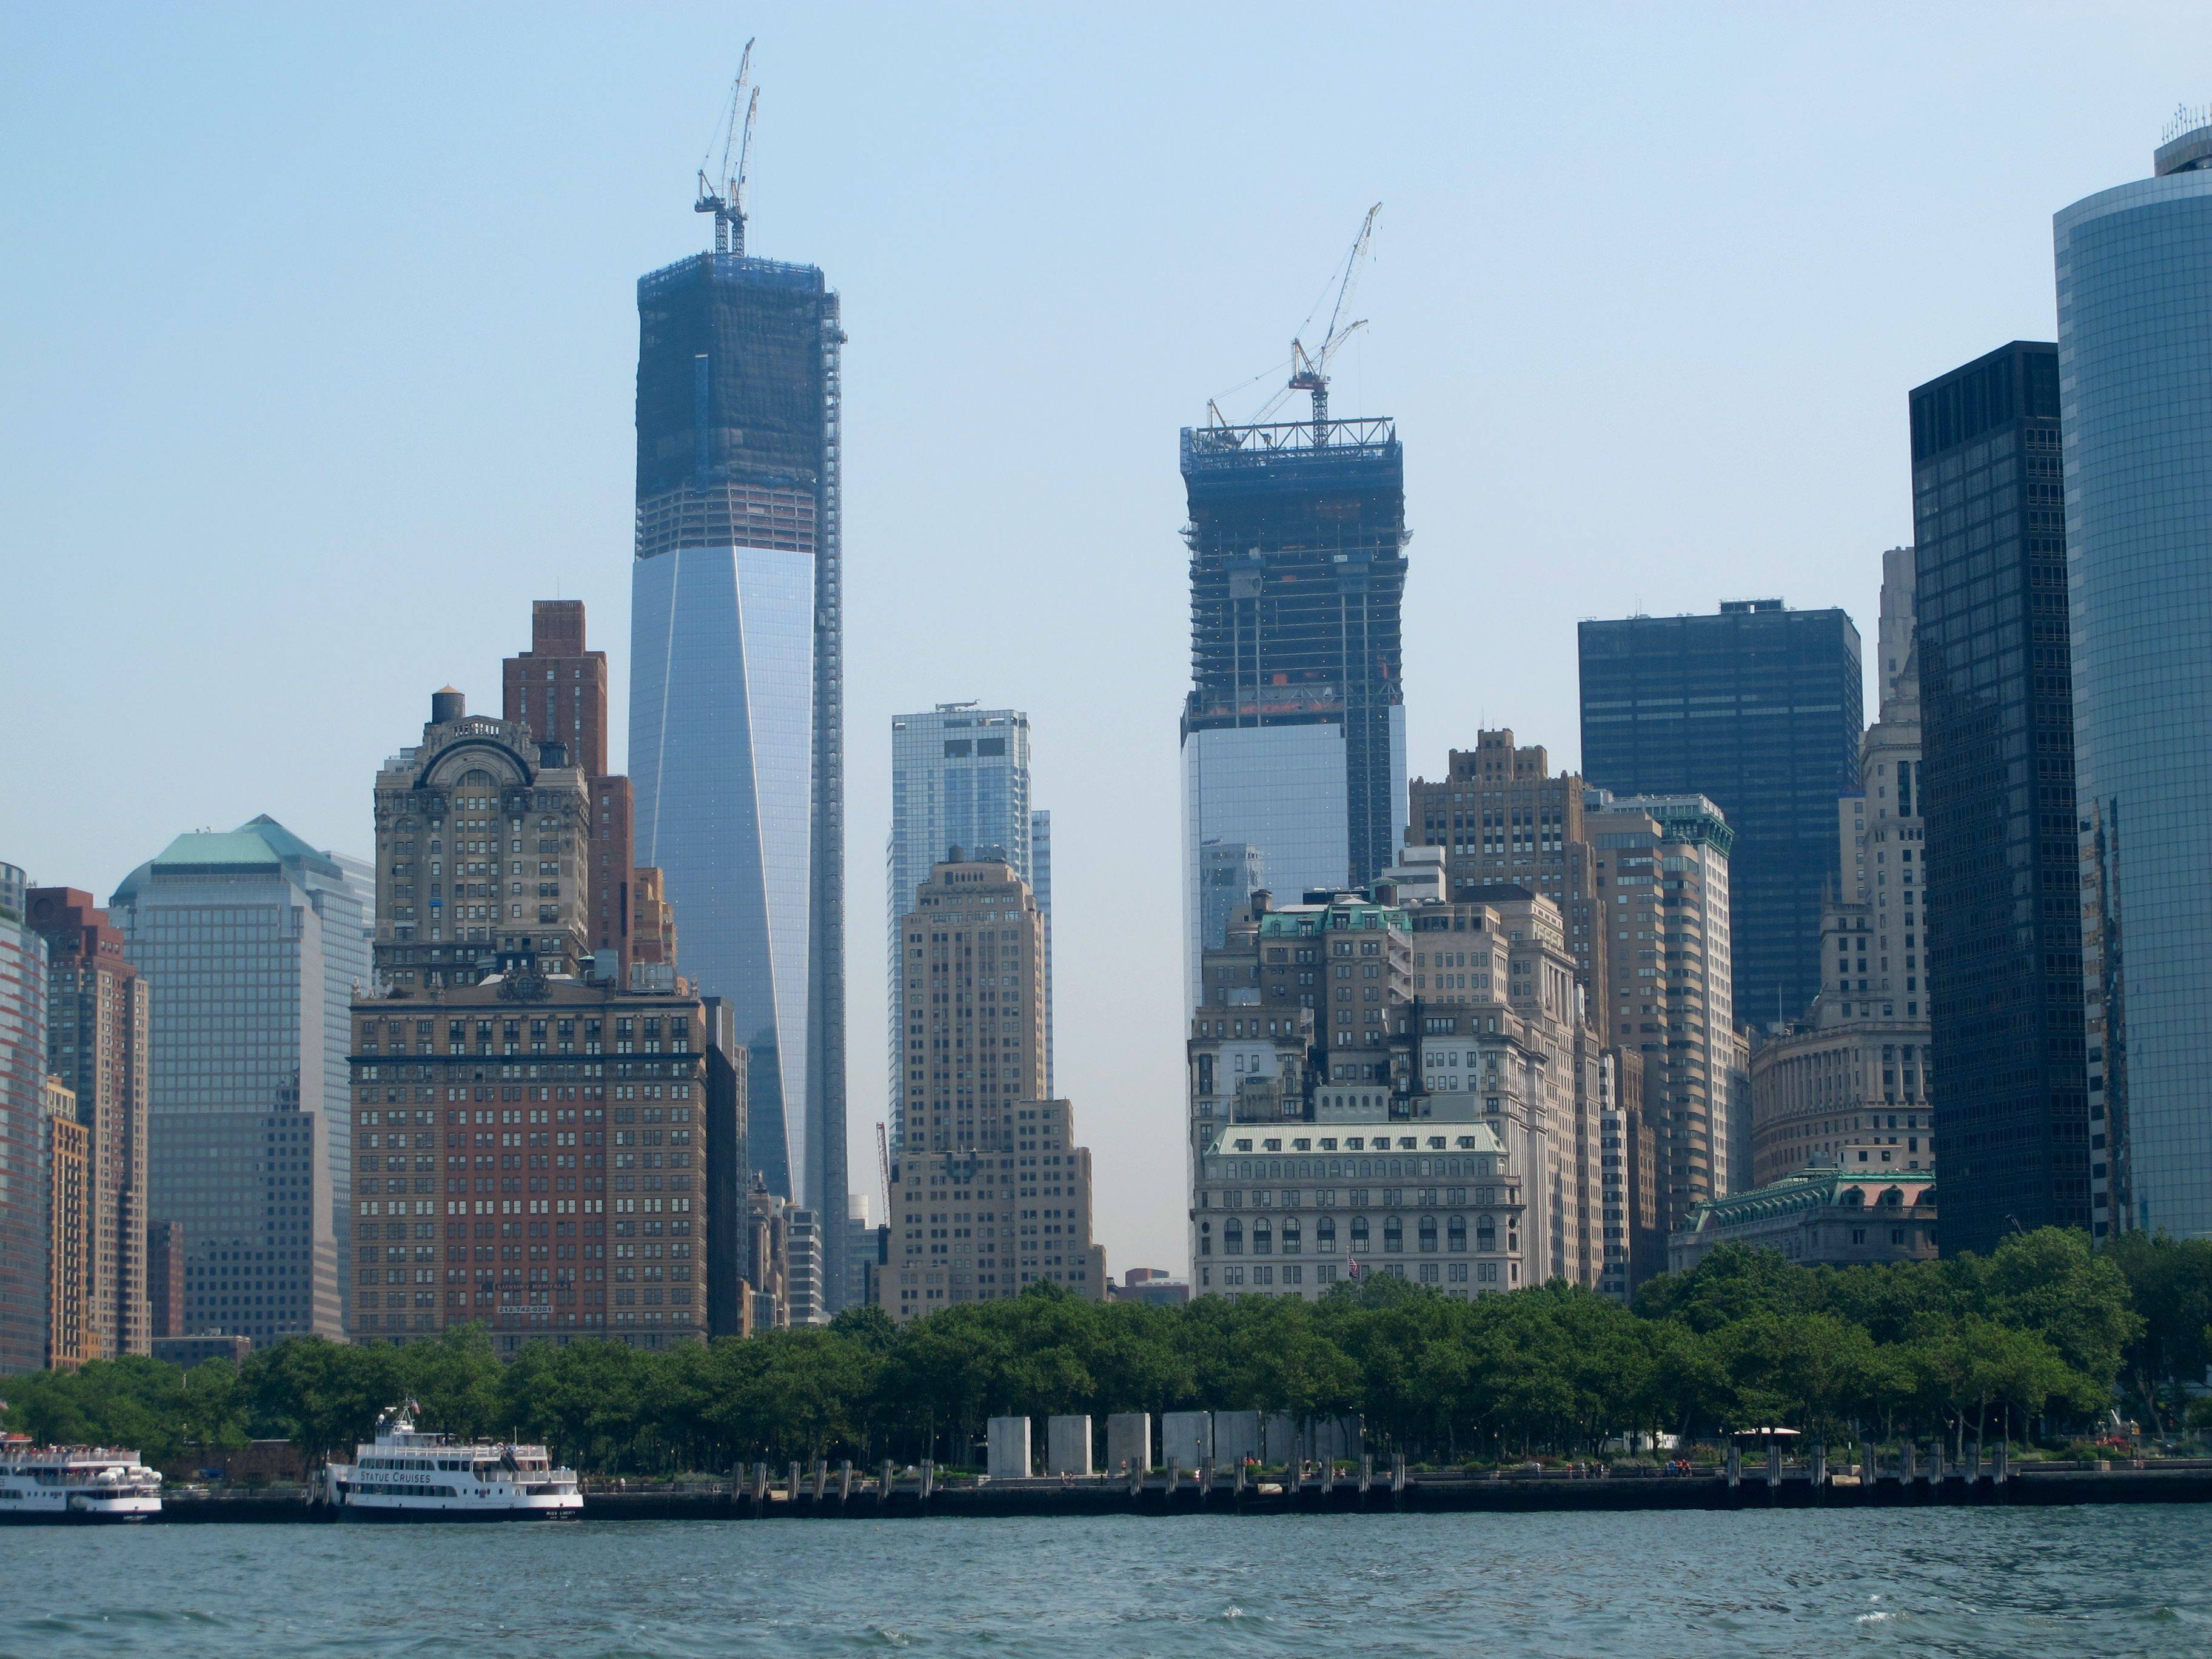 One World Trade Center Hd Wallpapers 3648x2736PX ~ Wallpapers World